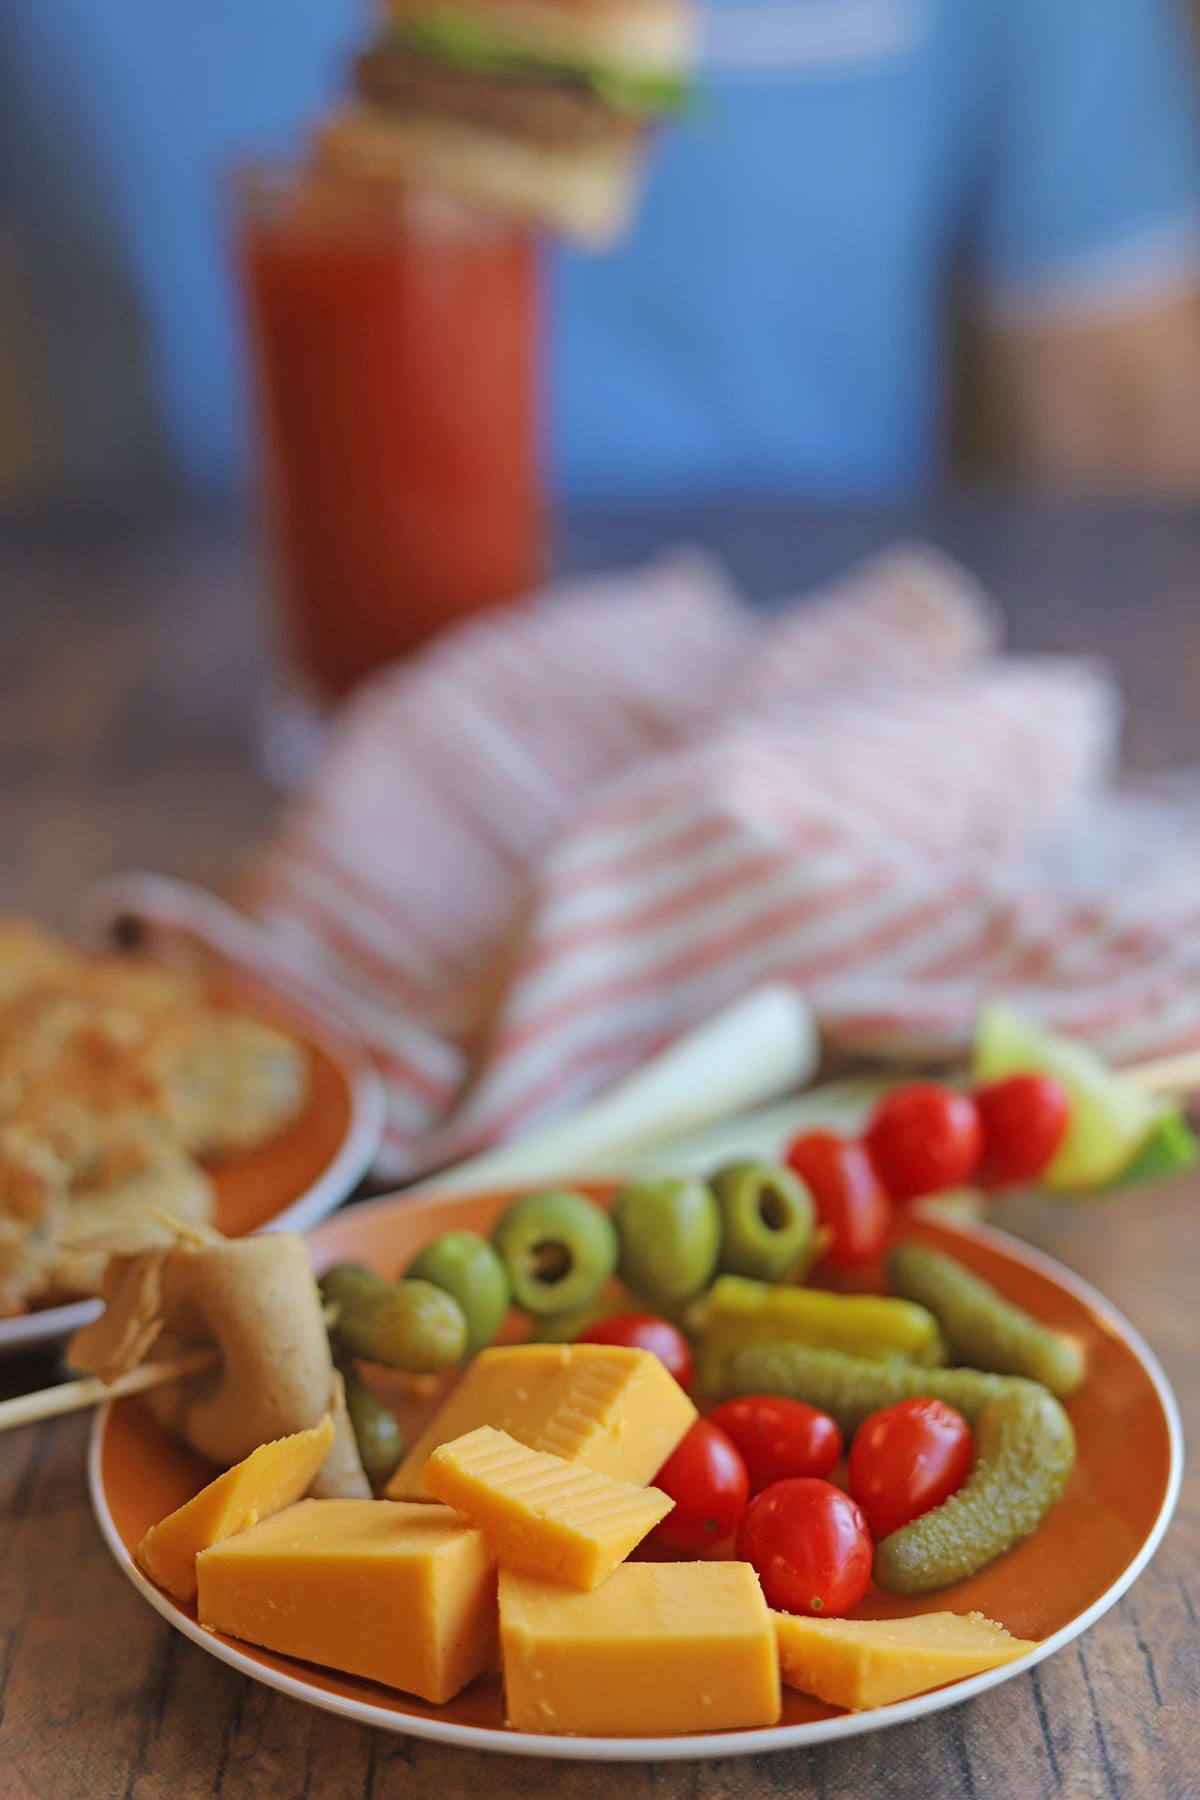 Garnishes on plate - vegan cheese cubes, skewers, tomatoes, and cornichons.